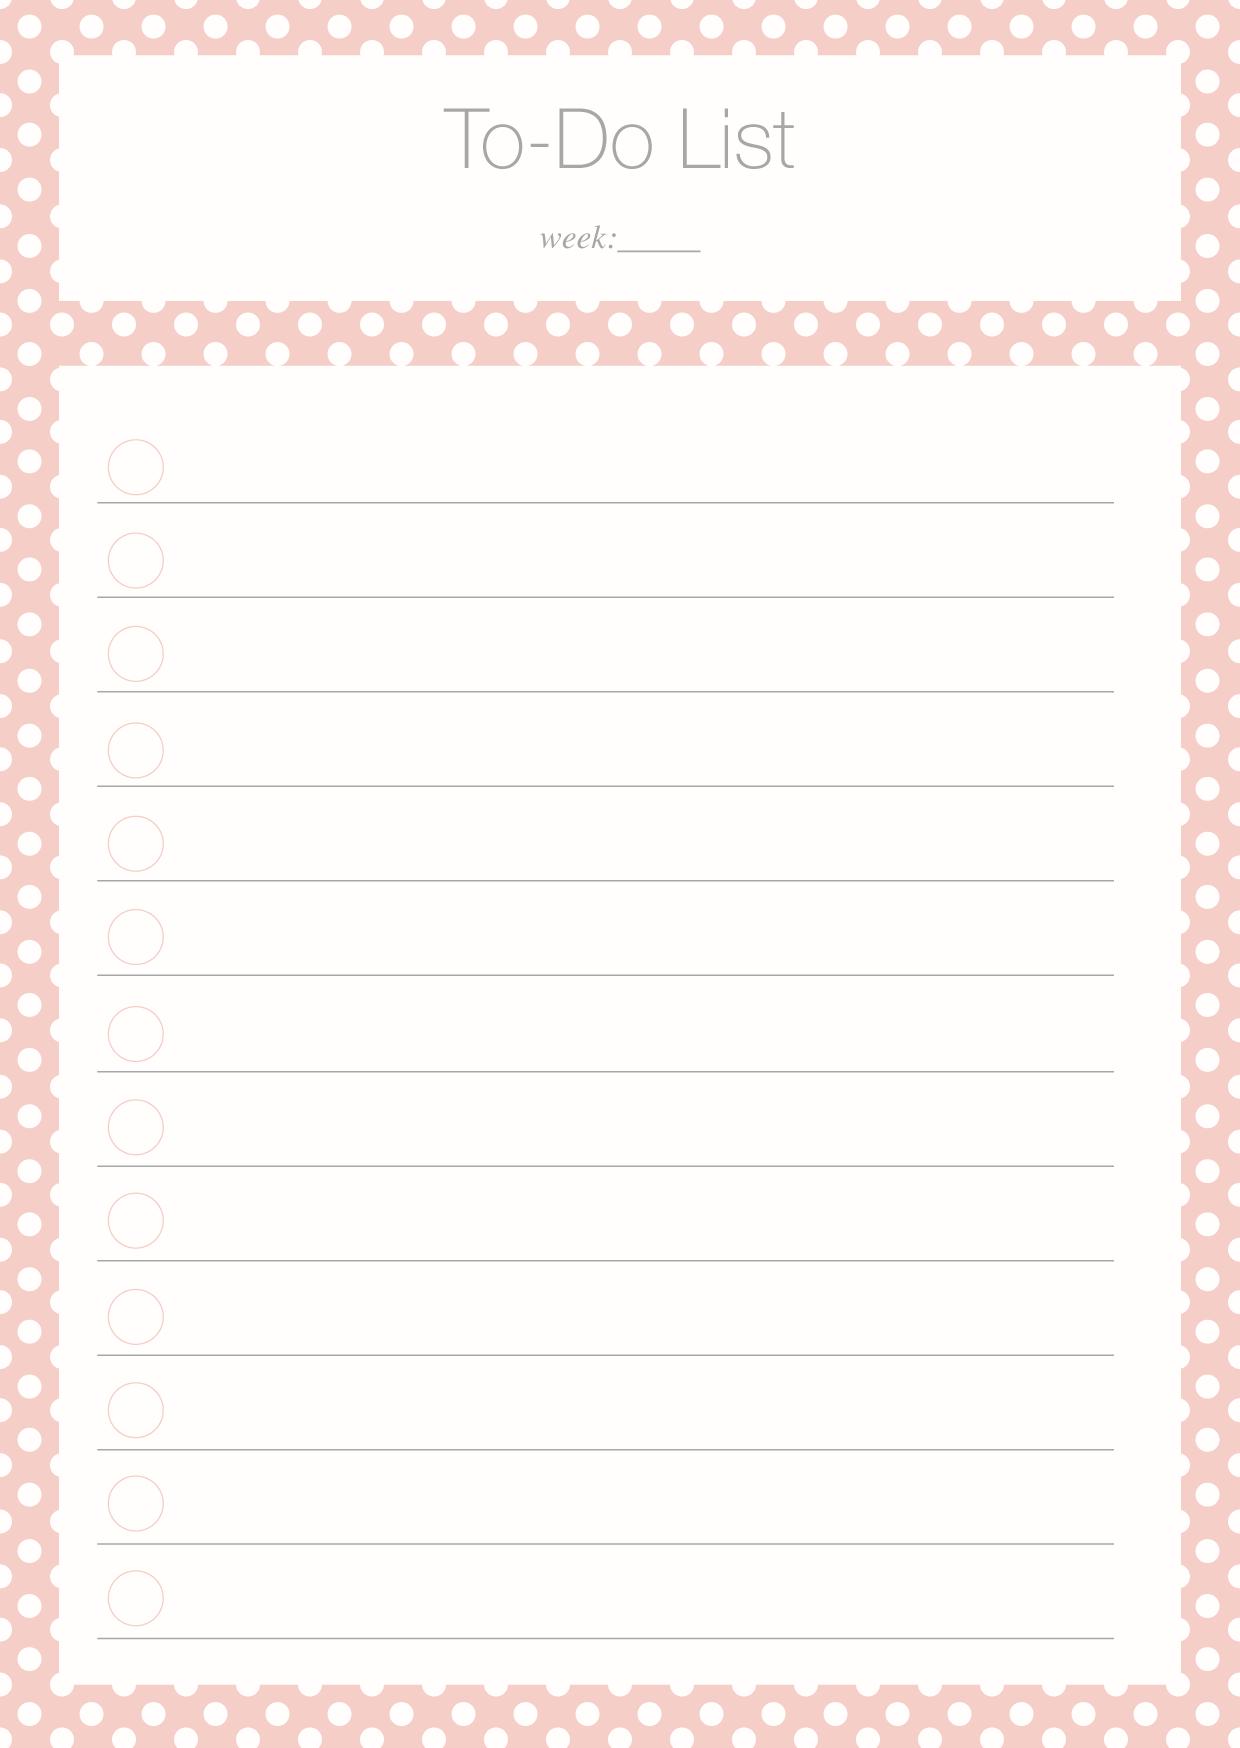 To Do List Freebie | Filofaxing, Kalender und Filofax